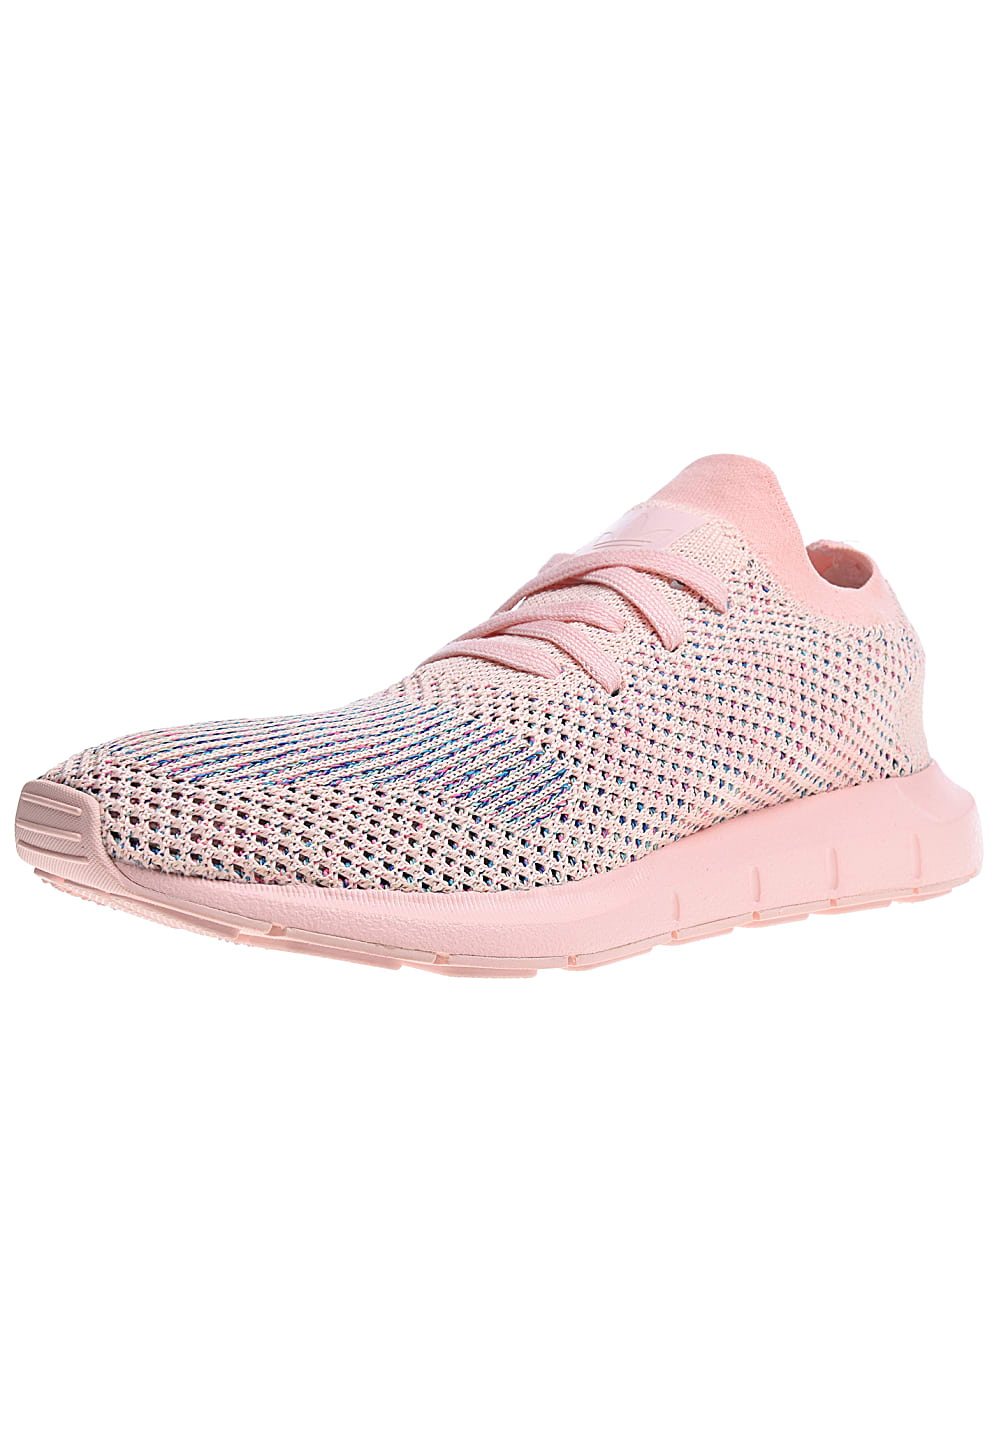 adidas swift run dames heren primeknit wit groen